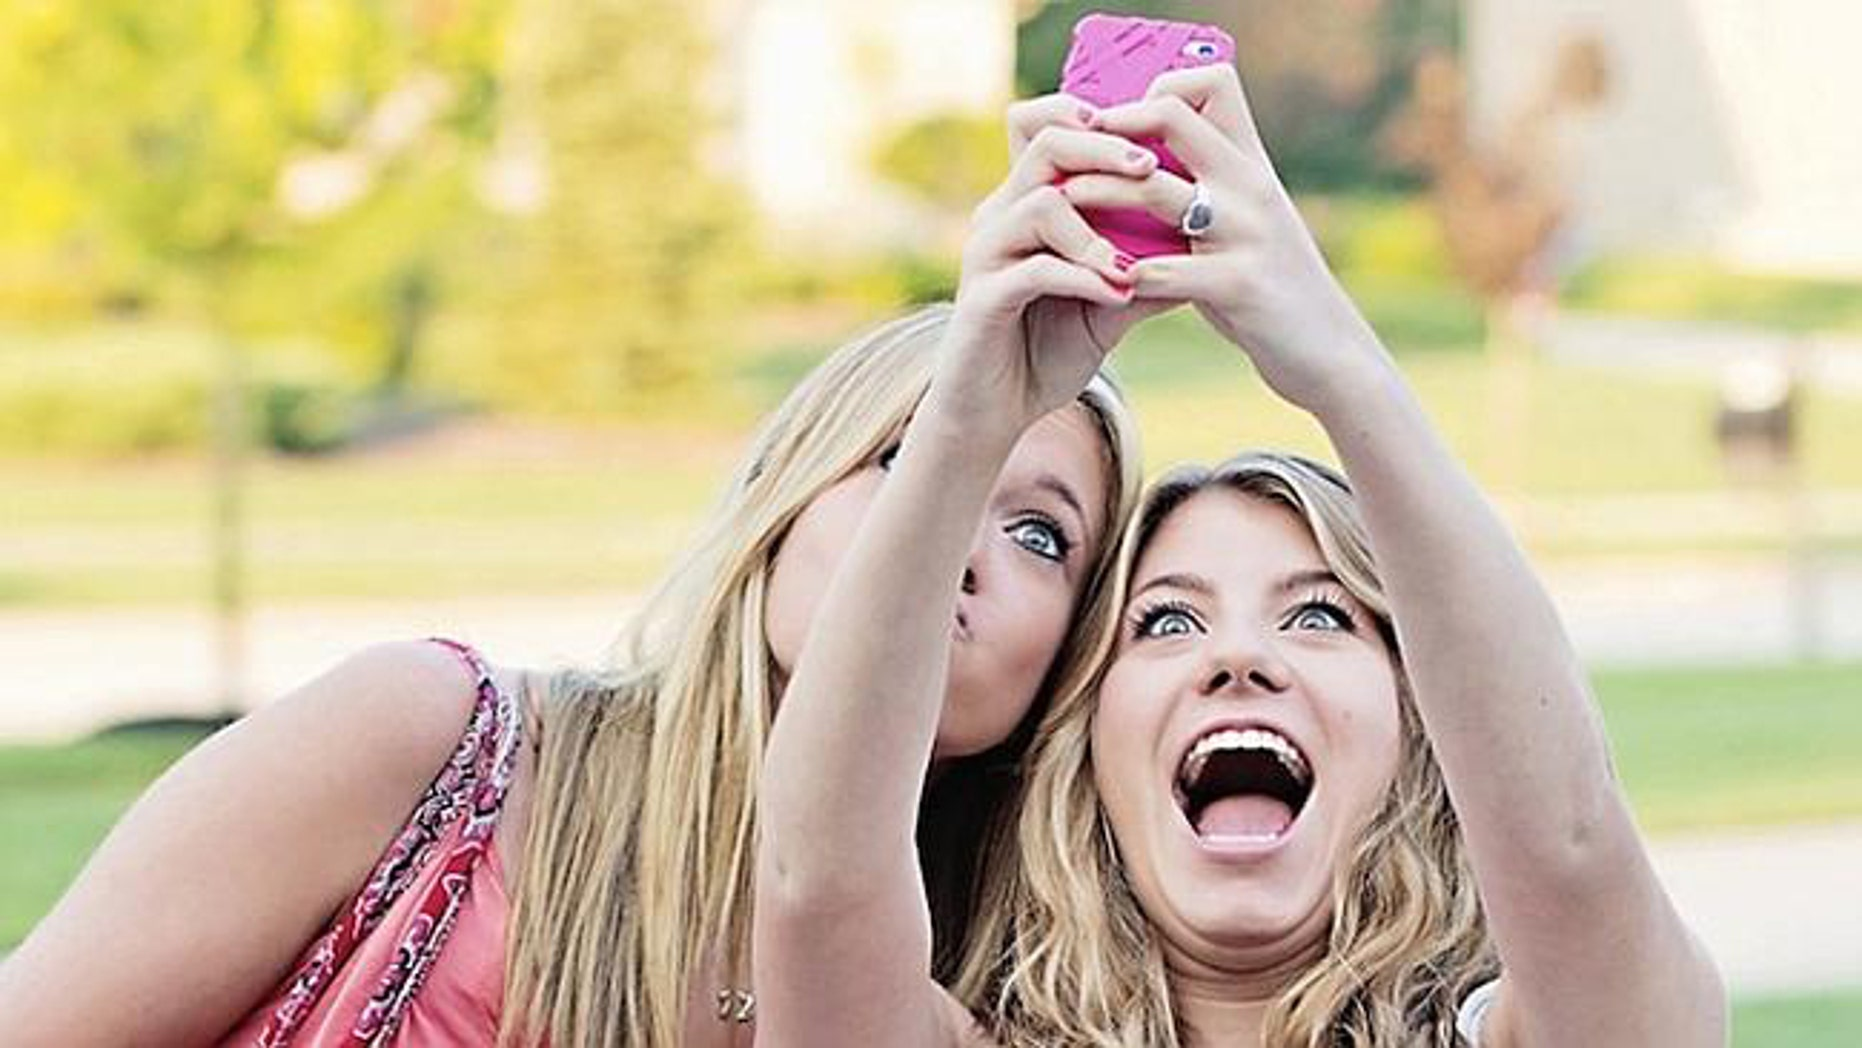 Snapchat users could be in for a shock.